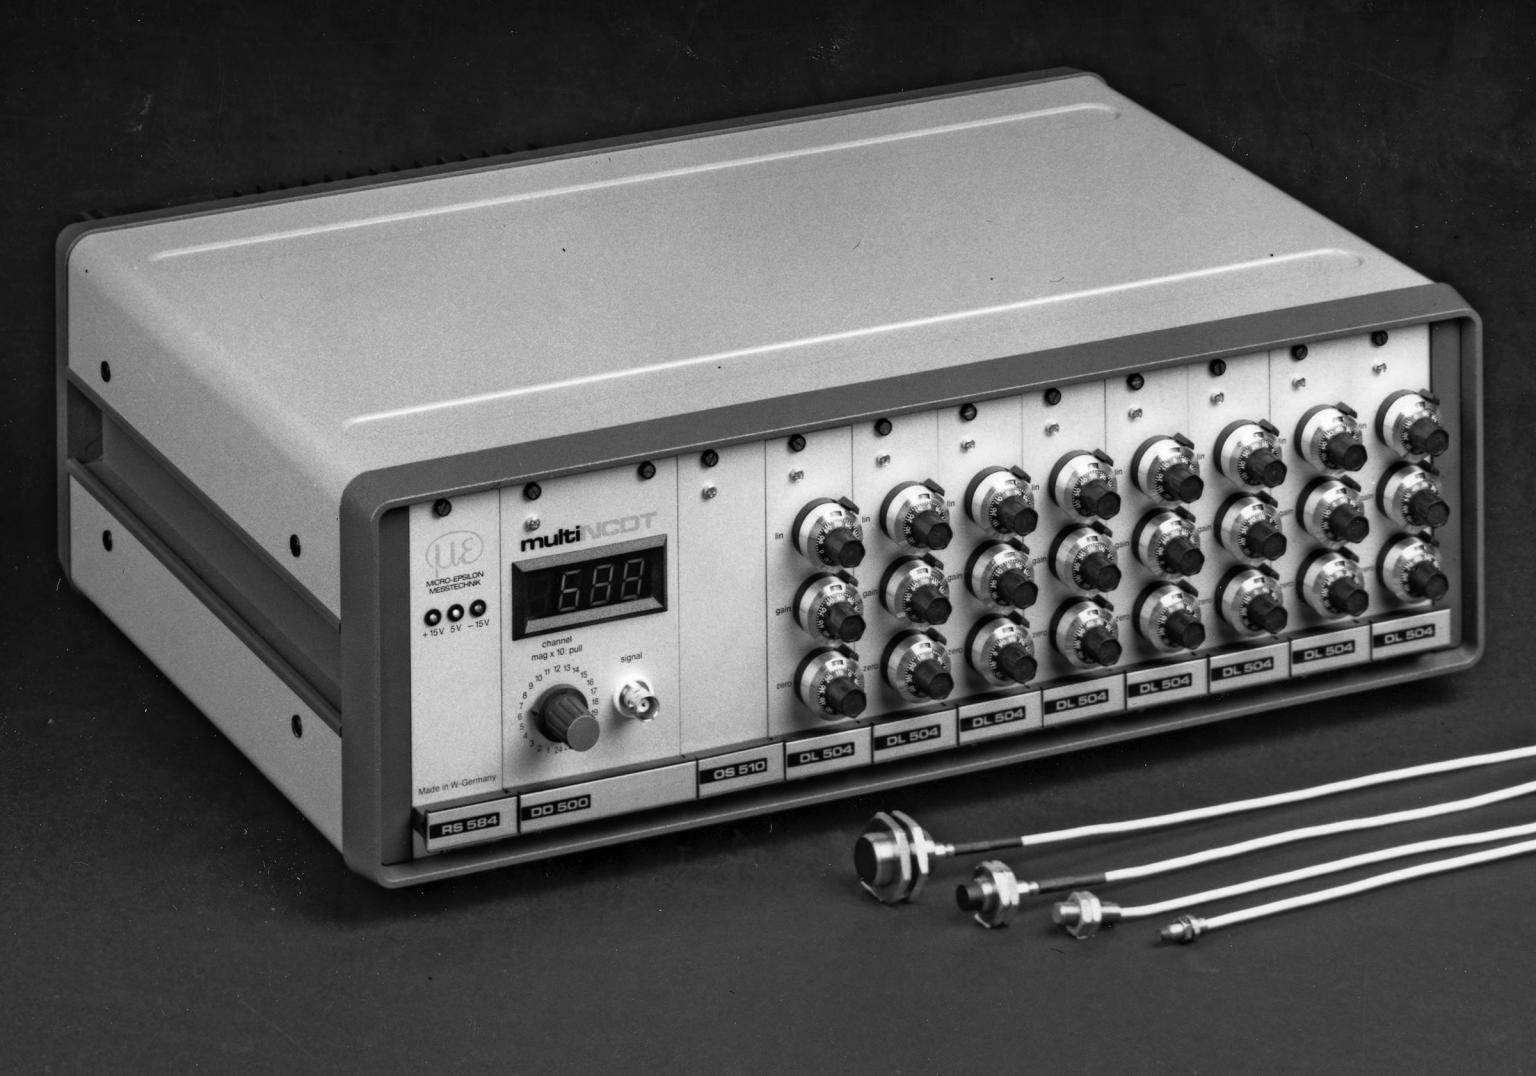 The first multi-channel eddy current measurement system (500 series), circa mid-1970s